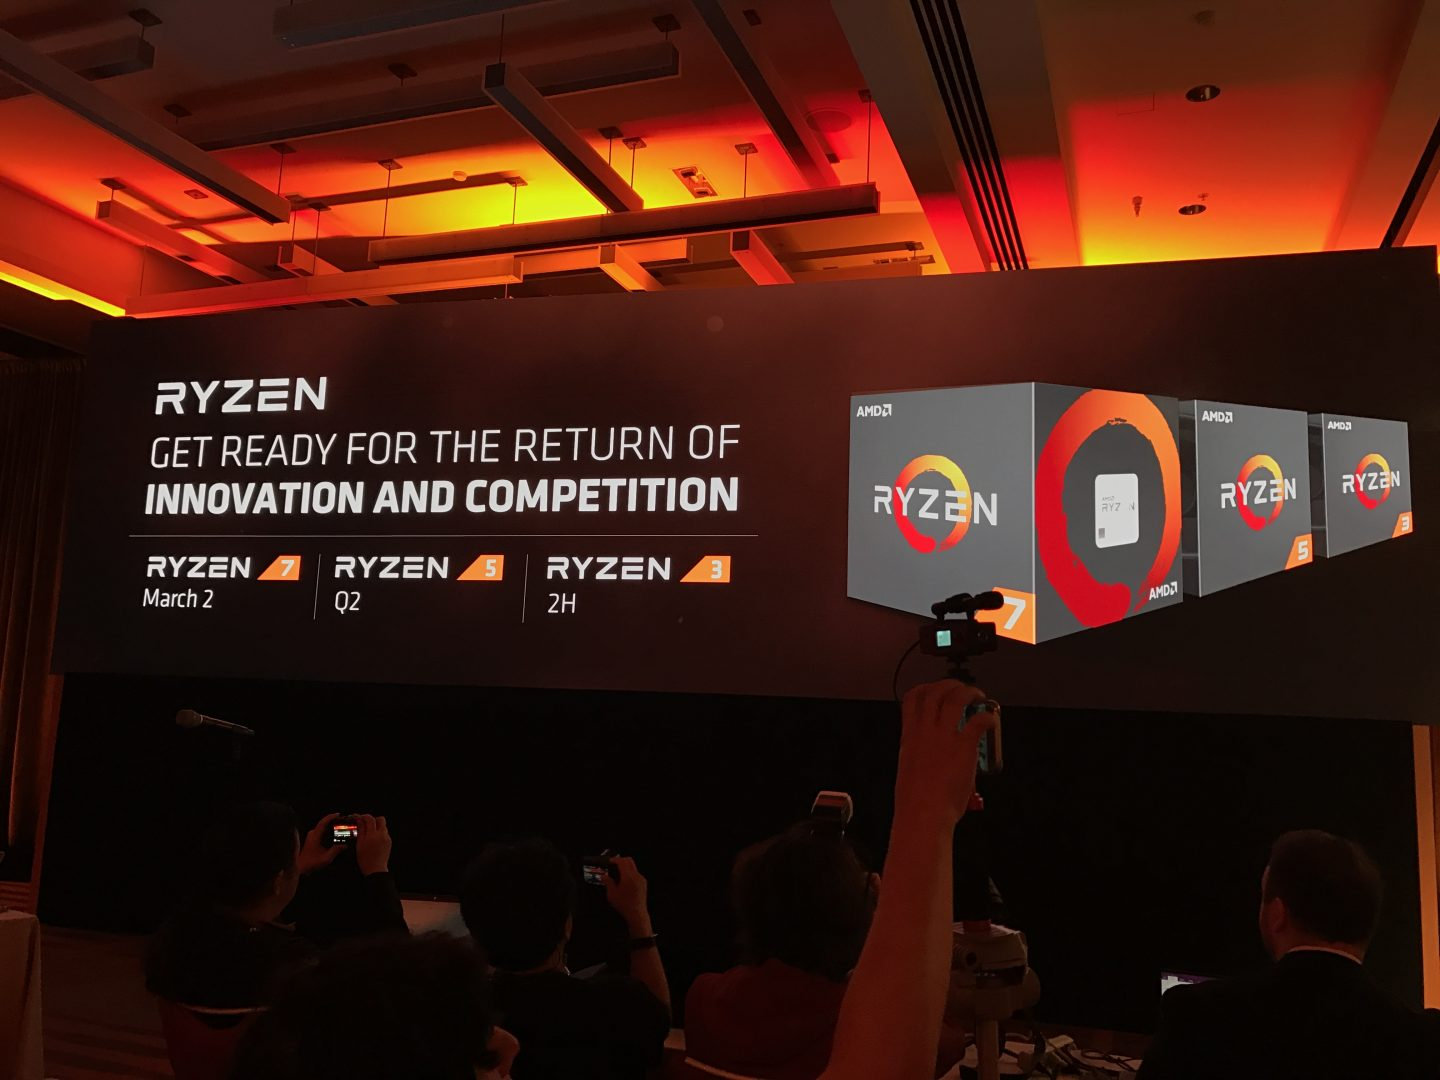 AMD accidentally reveals their Ryzen 3 1300 and 1200 details